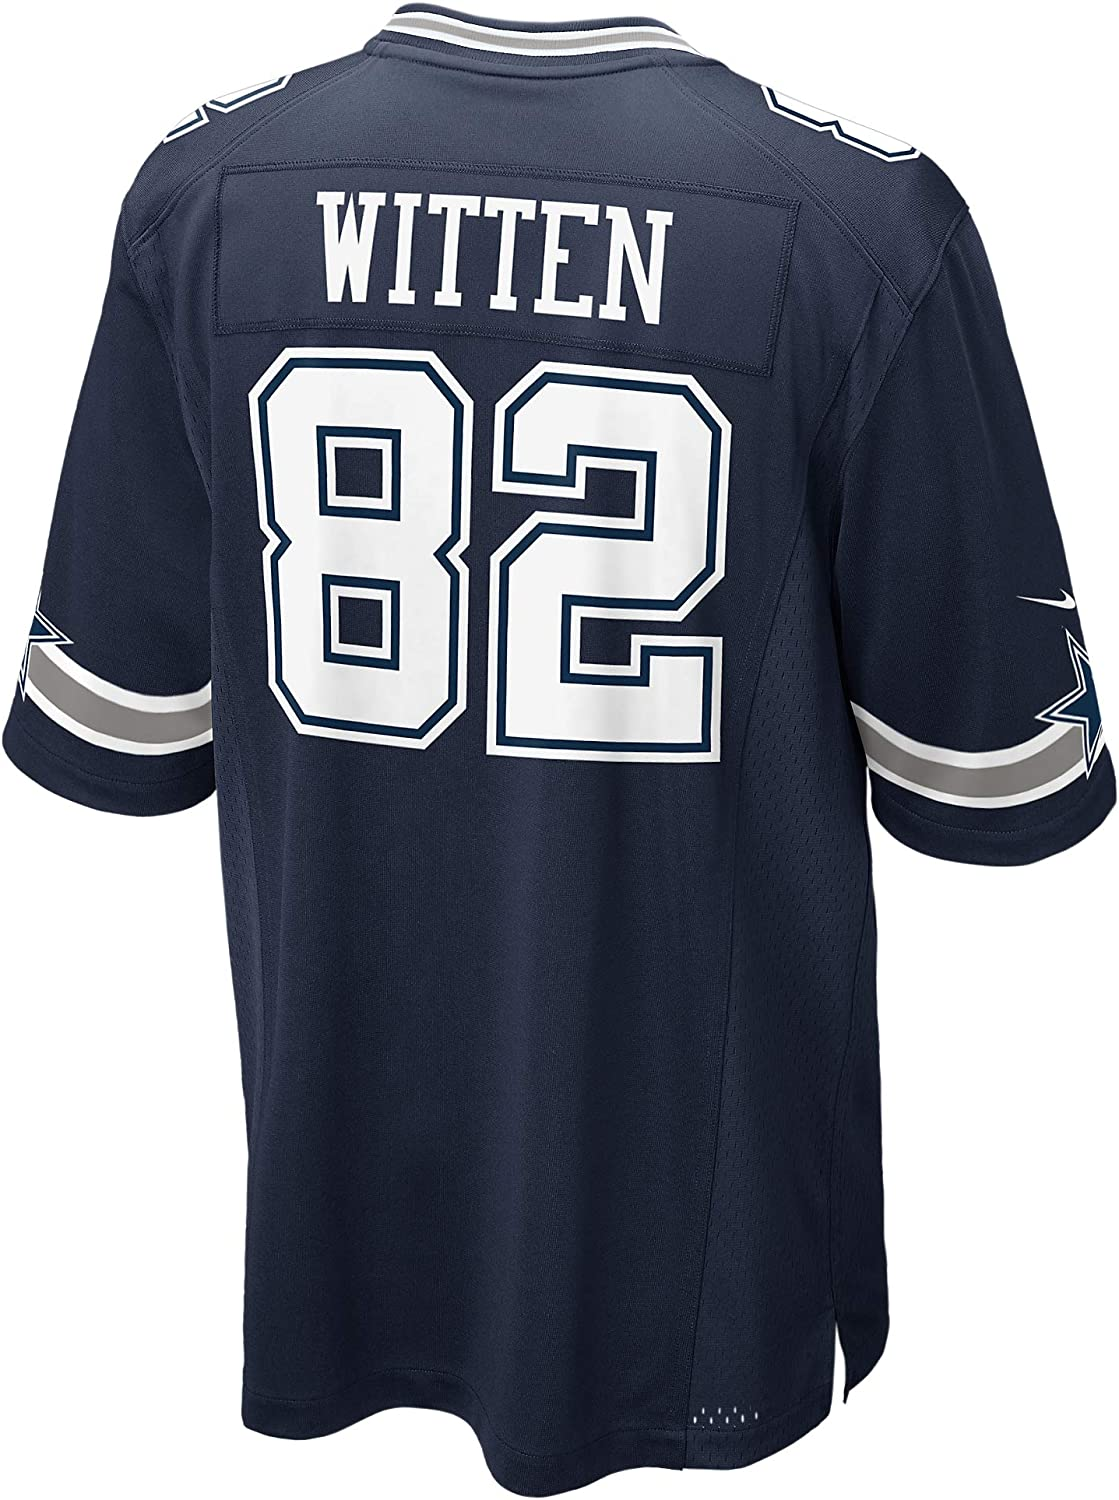 women's dallas cowboys witten jersey